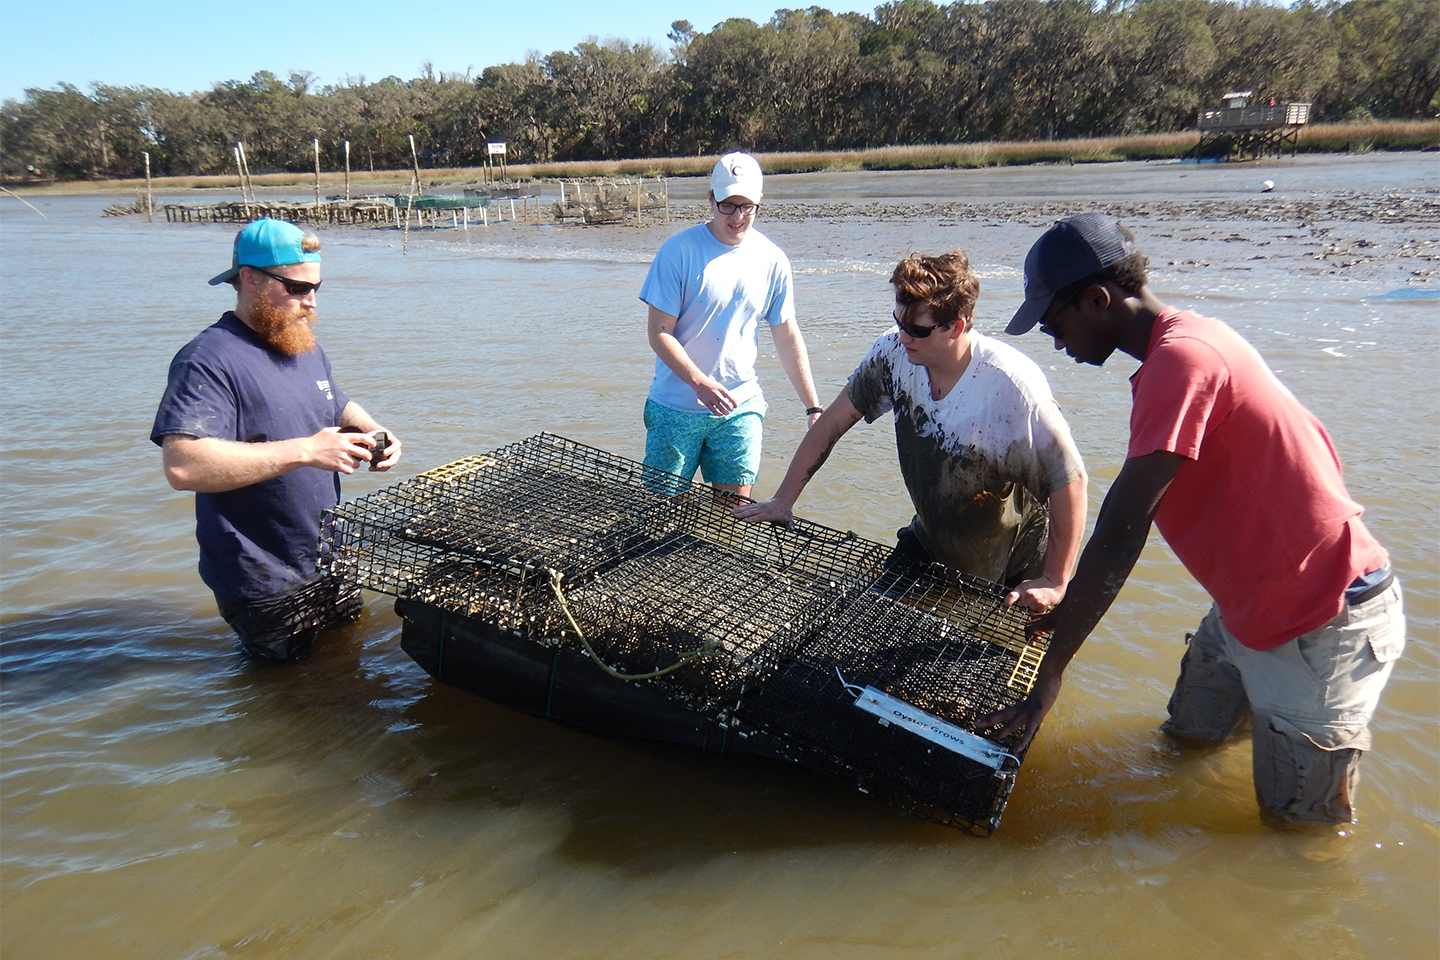 Four people holding an oyster cage in the water